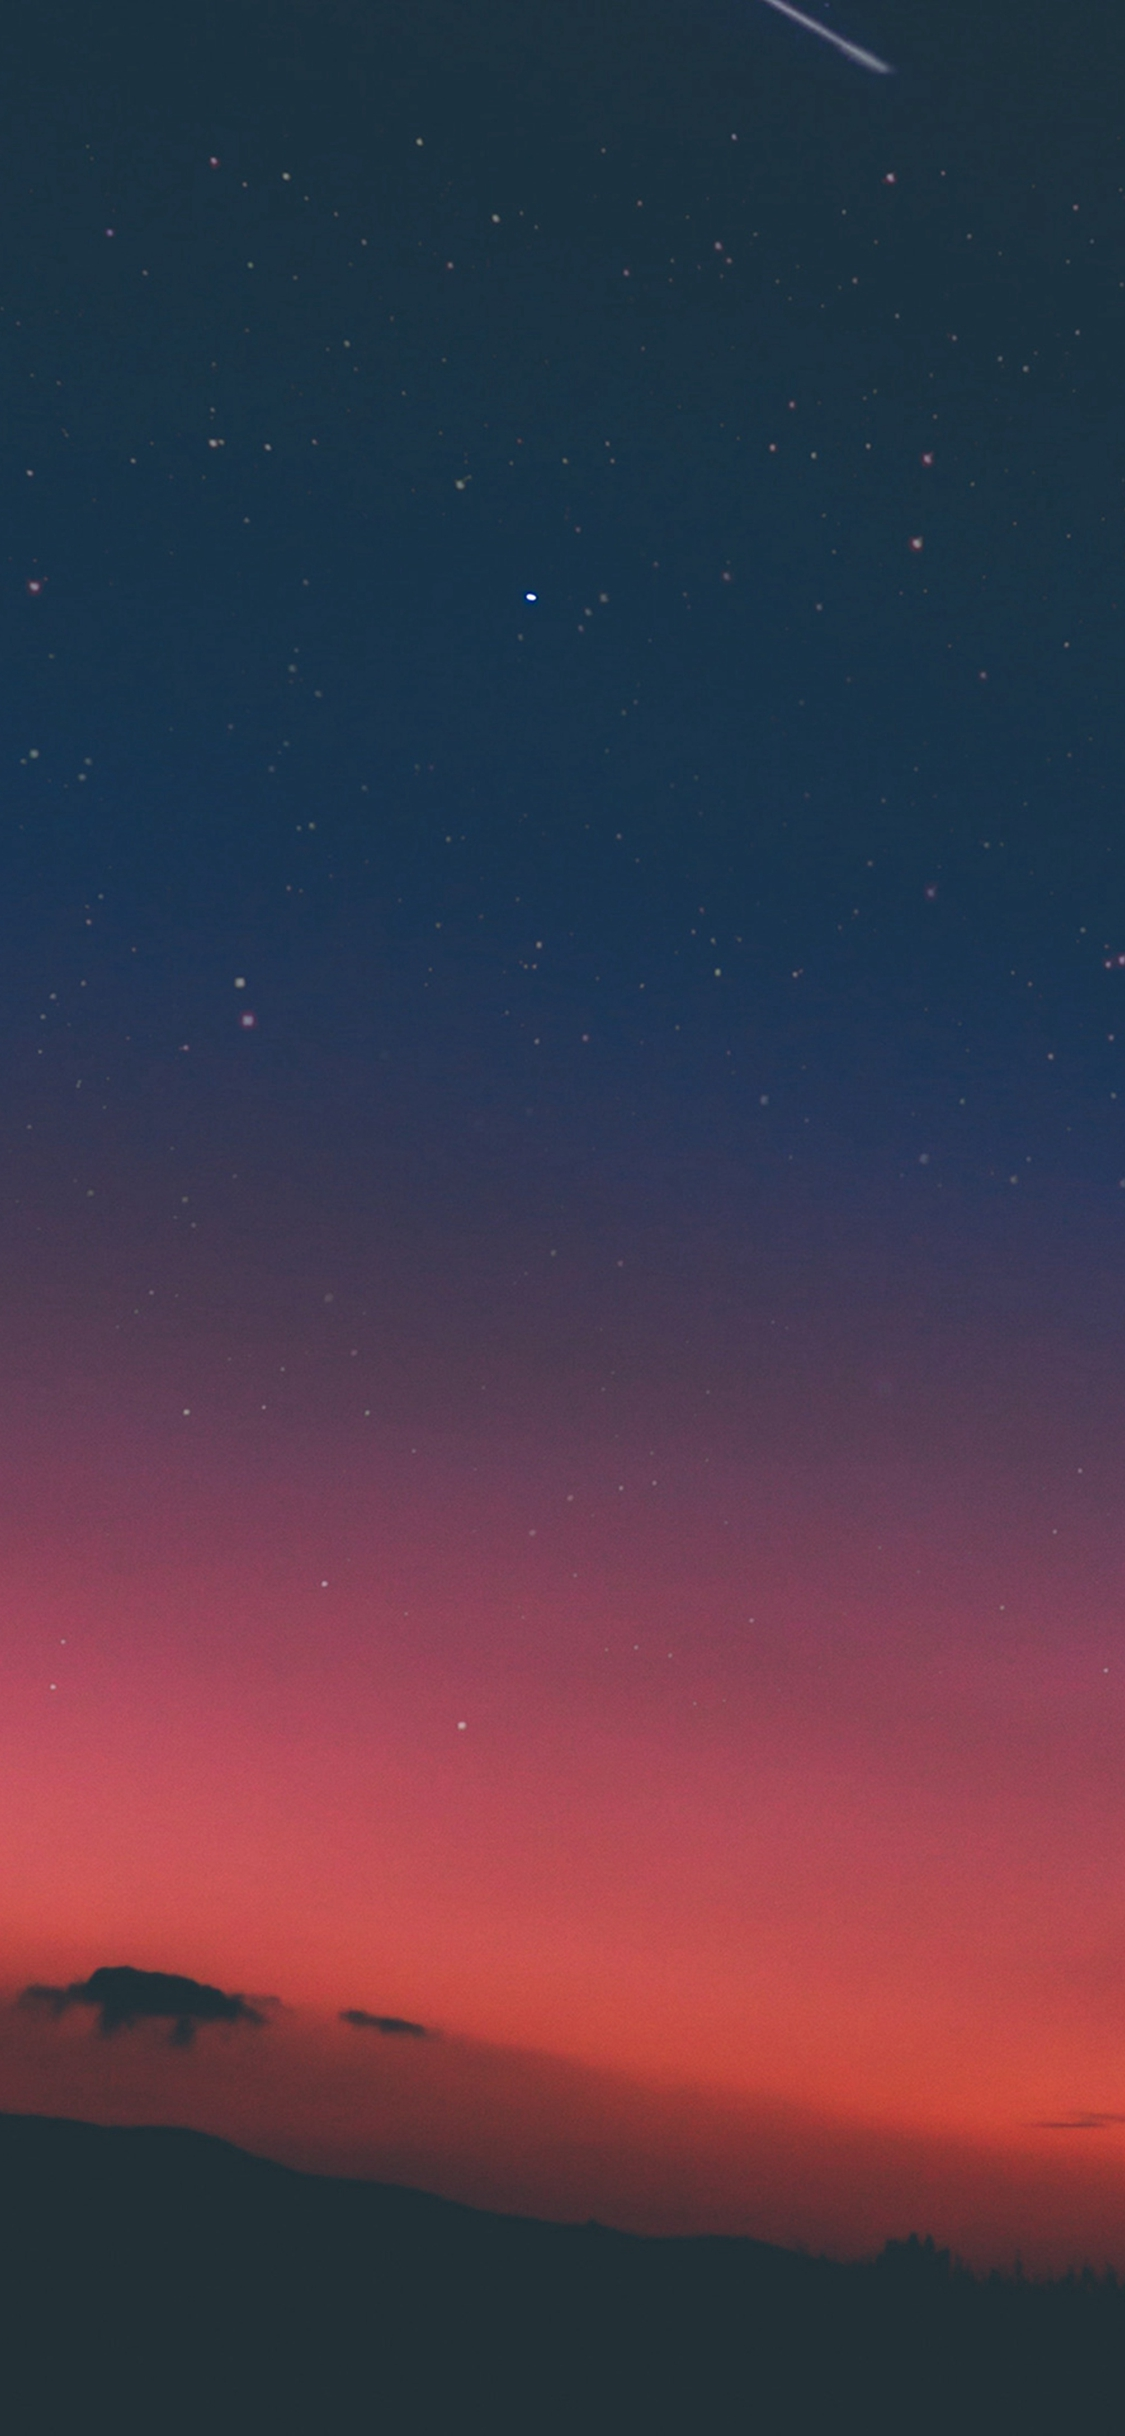 Wallpaper iphone sky - Night Sky Sunset Pink Nature Iphone X Wallpaper